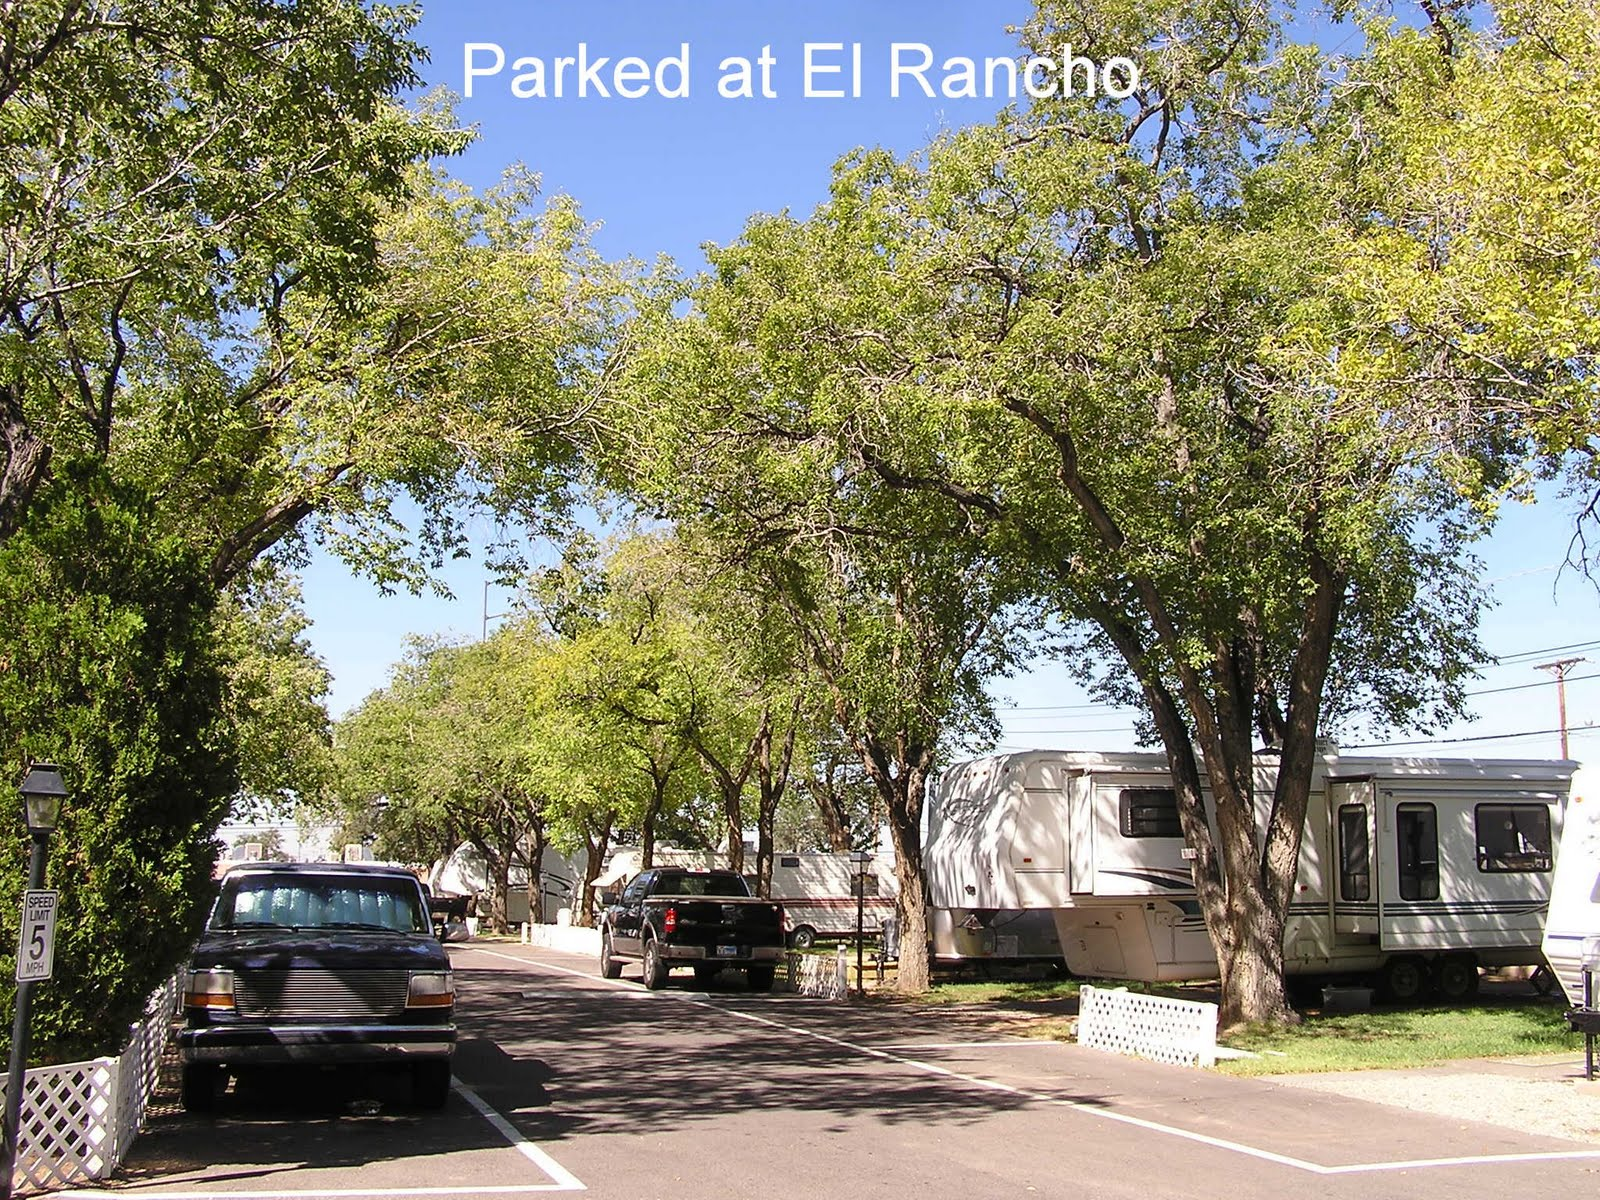 El Rancho Mobile Home Park Albuquerque NM 9 28 12 14